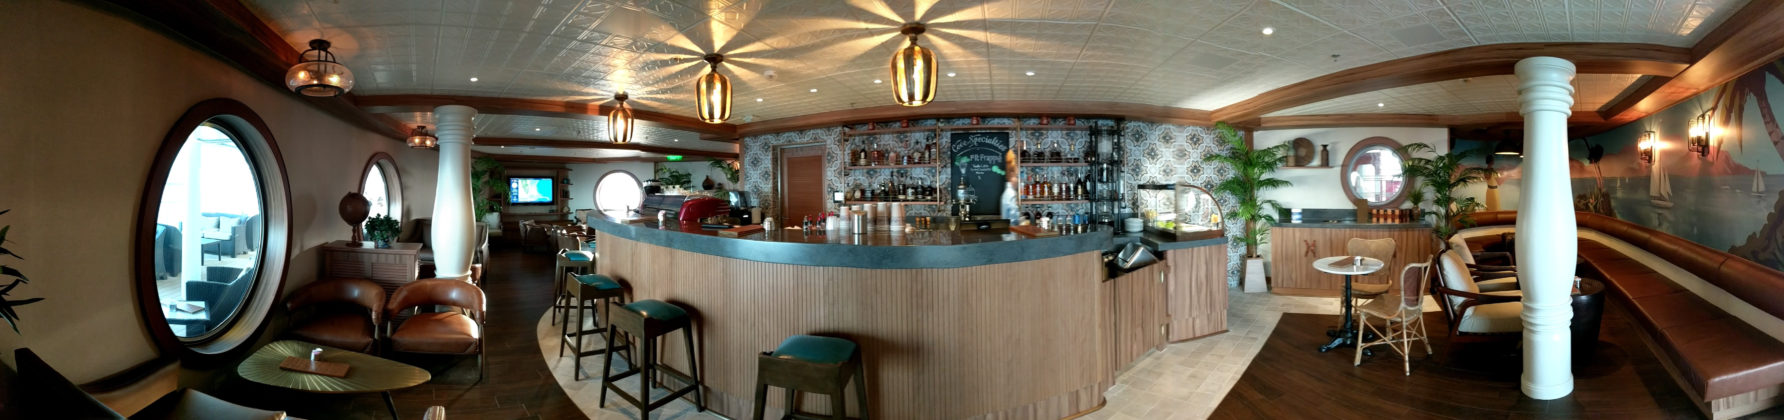 Disney Magic Cove Cafe